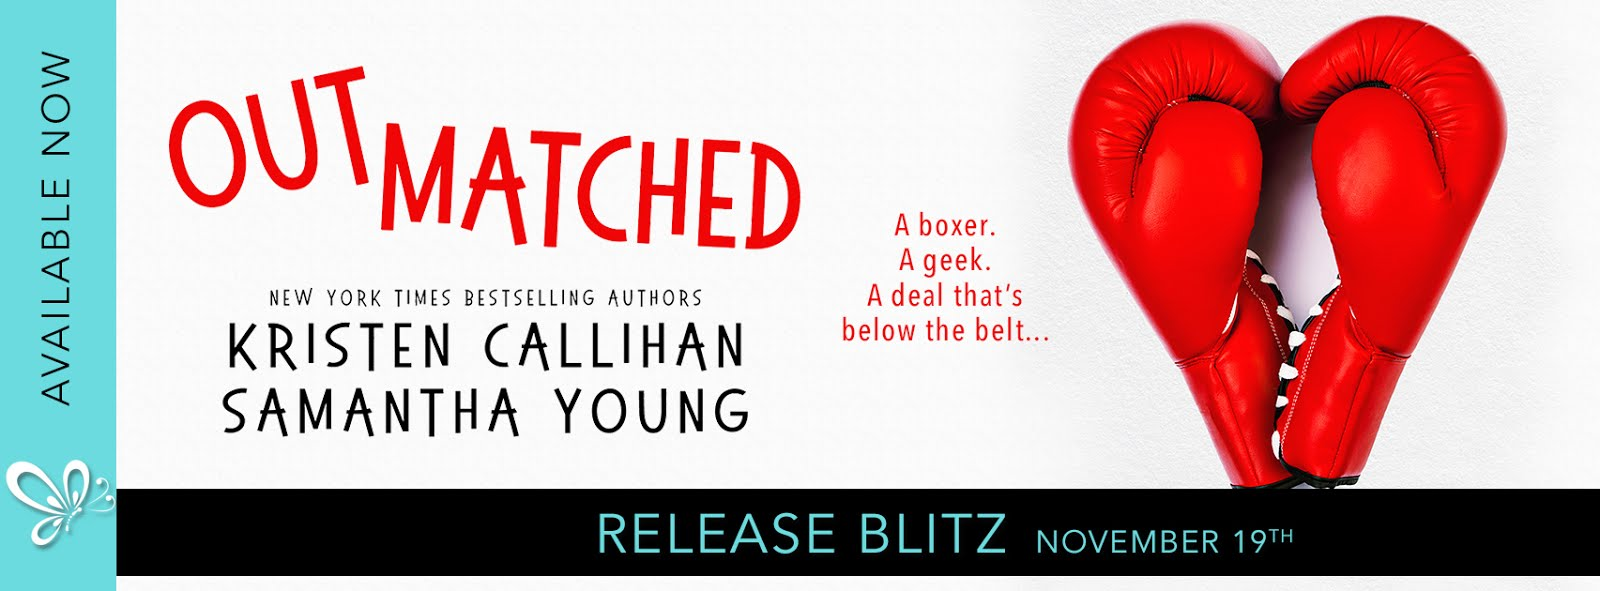 Outmatched Release Blitz